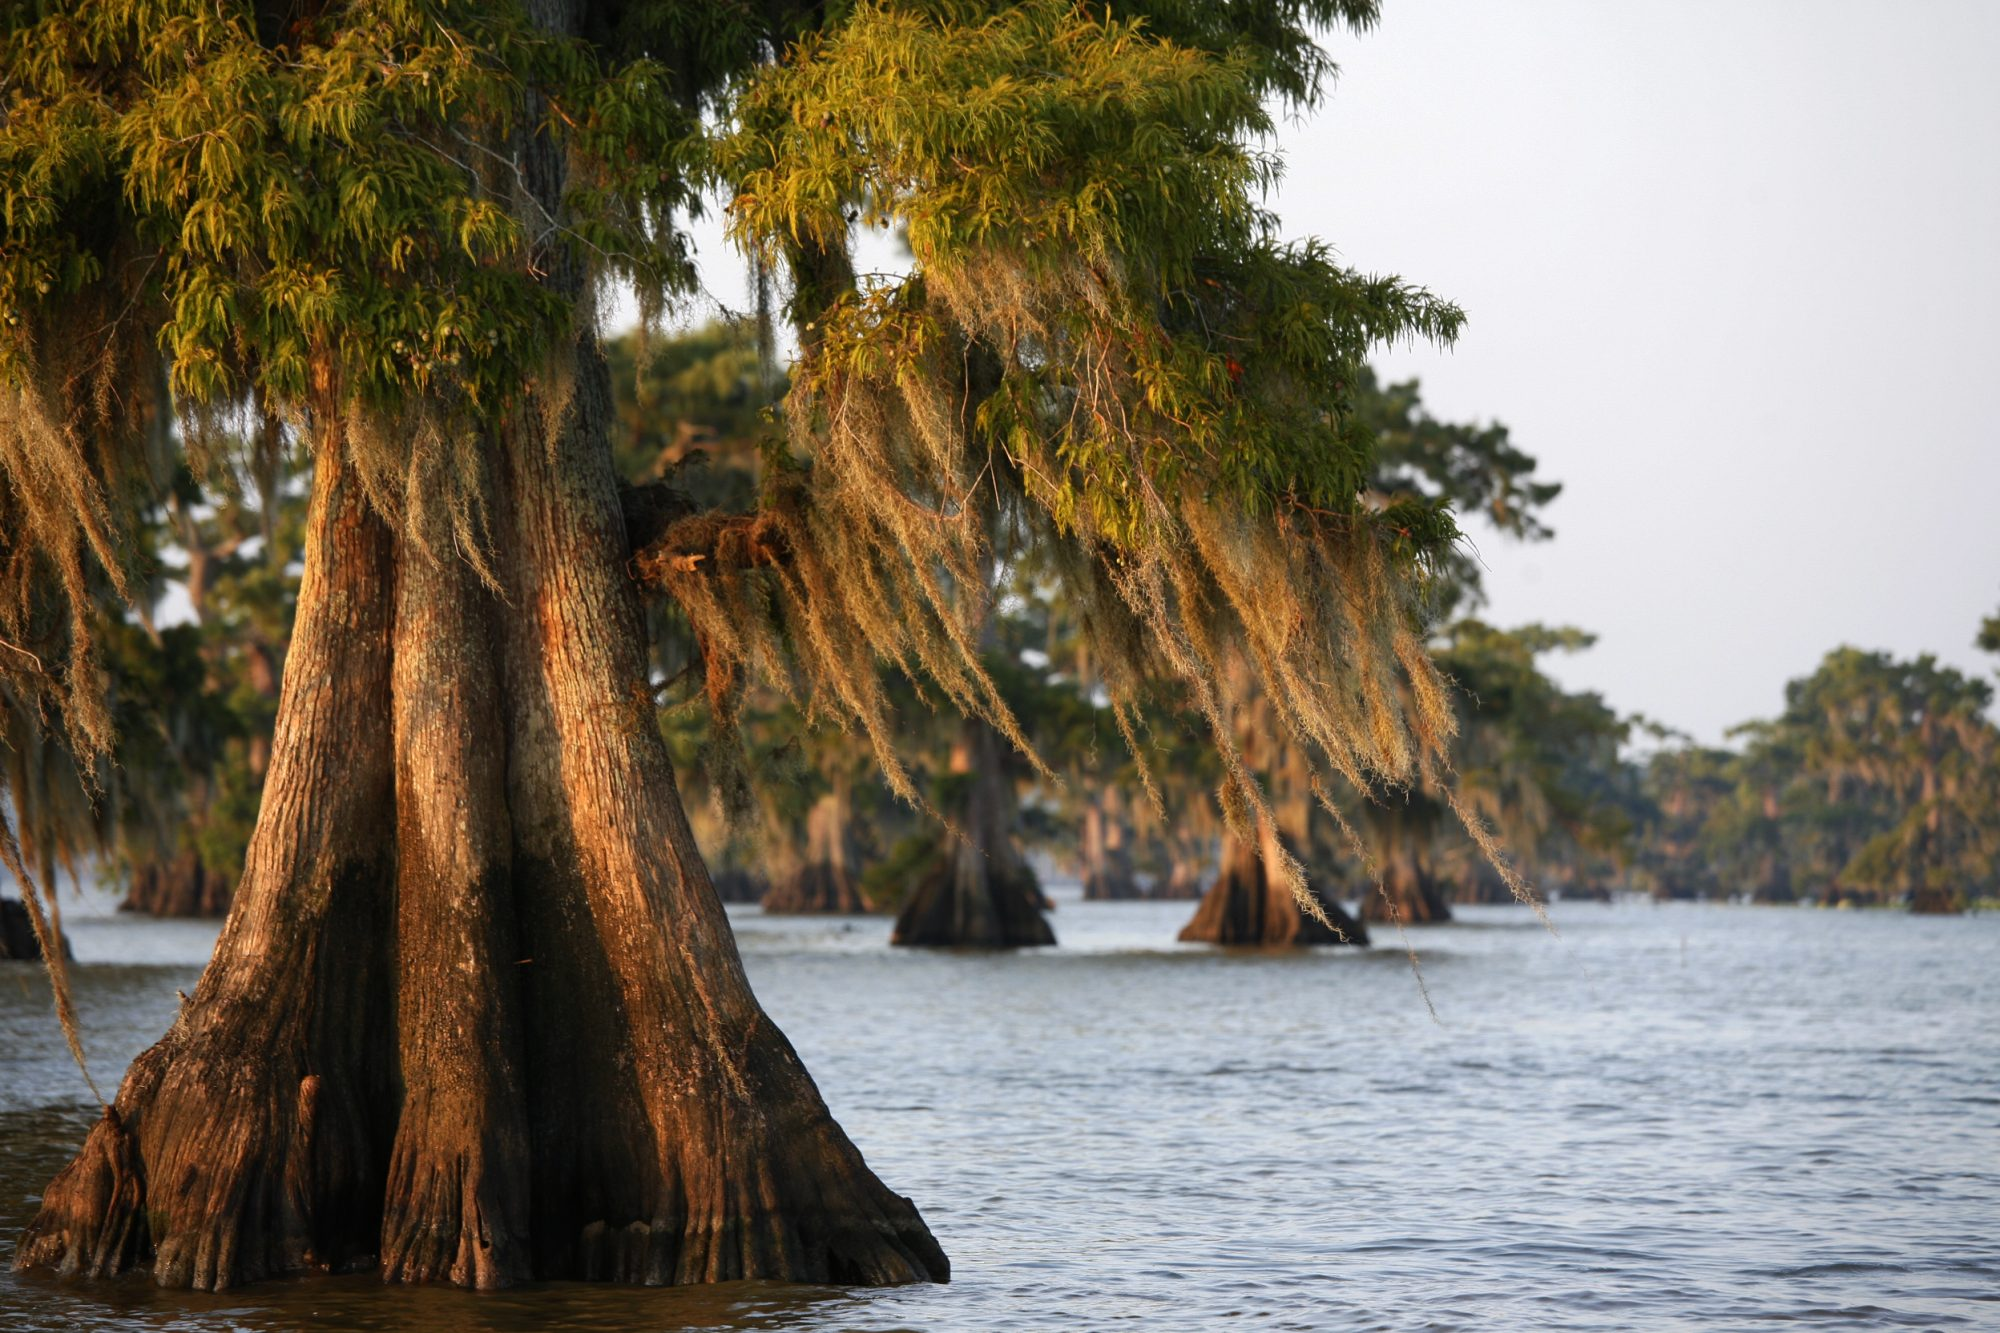 Atchfalaya River with Cypress Trees